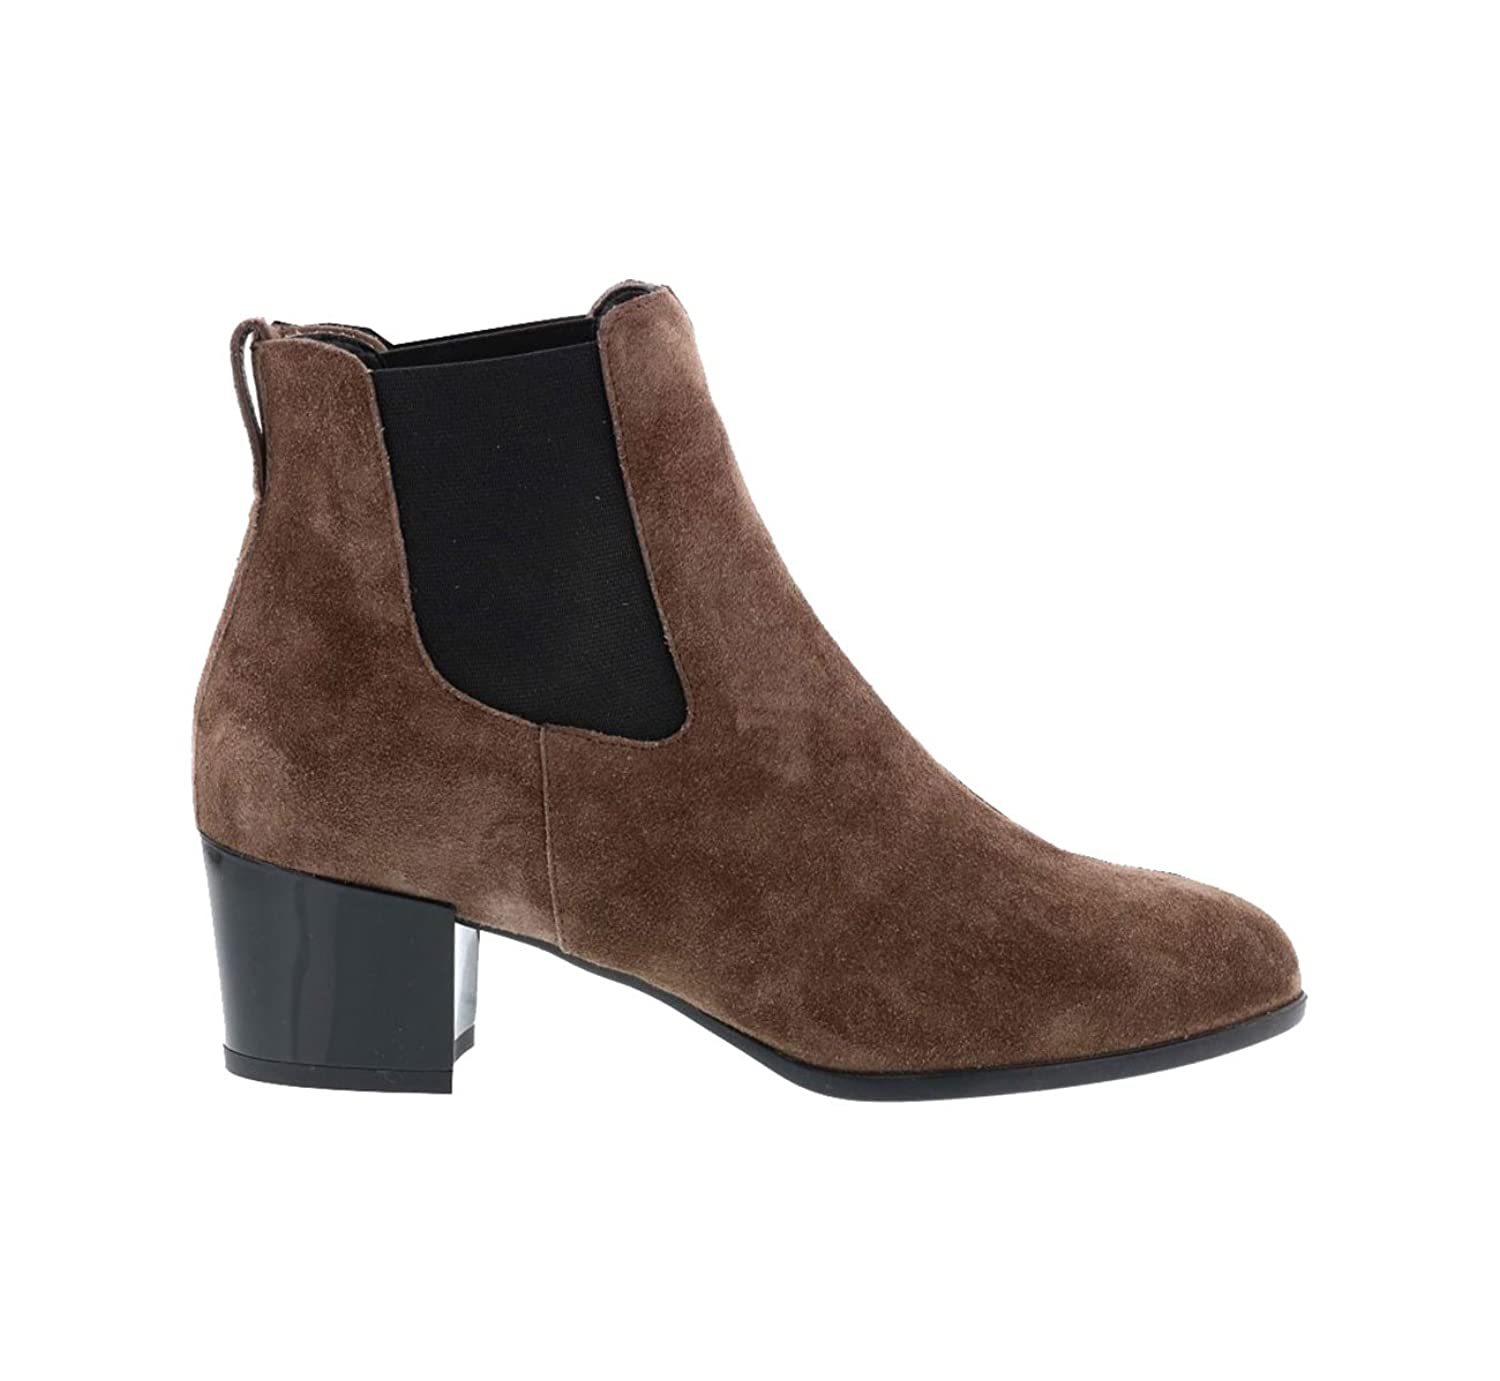 HOGAN ANKLE BOOTS IN BROWN SUEDE, Womens.